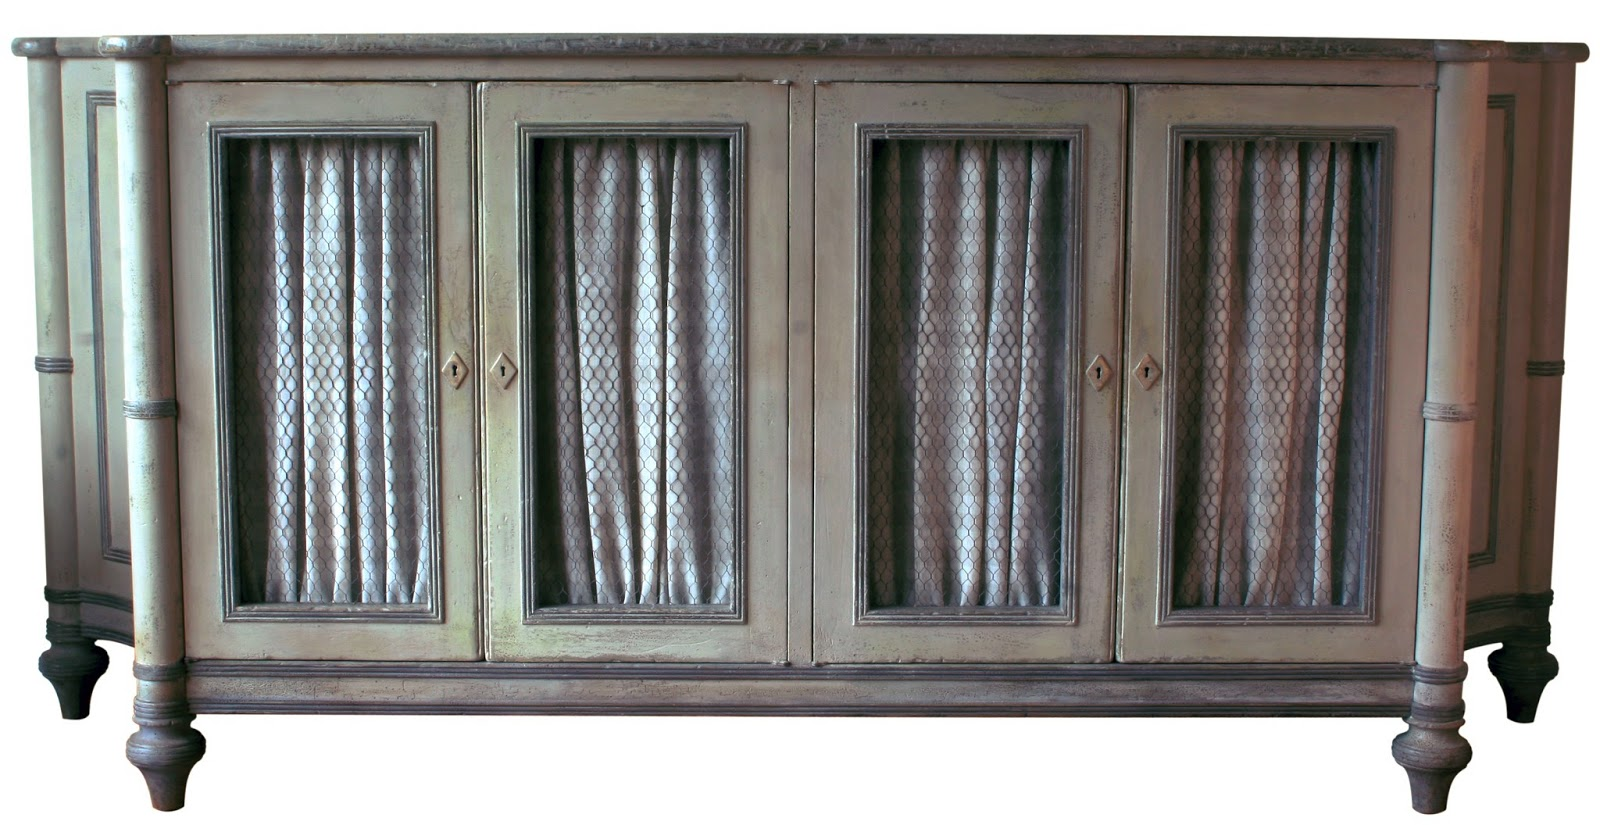 newly made to look antique, a gustavian sideboard painted swedish grey & white and chickenwire doors